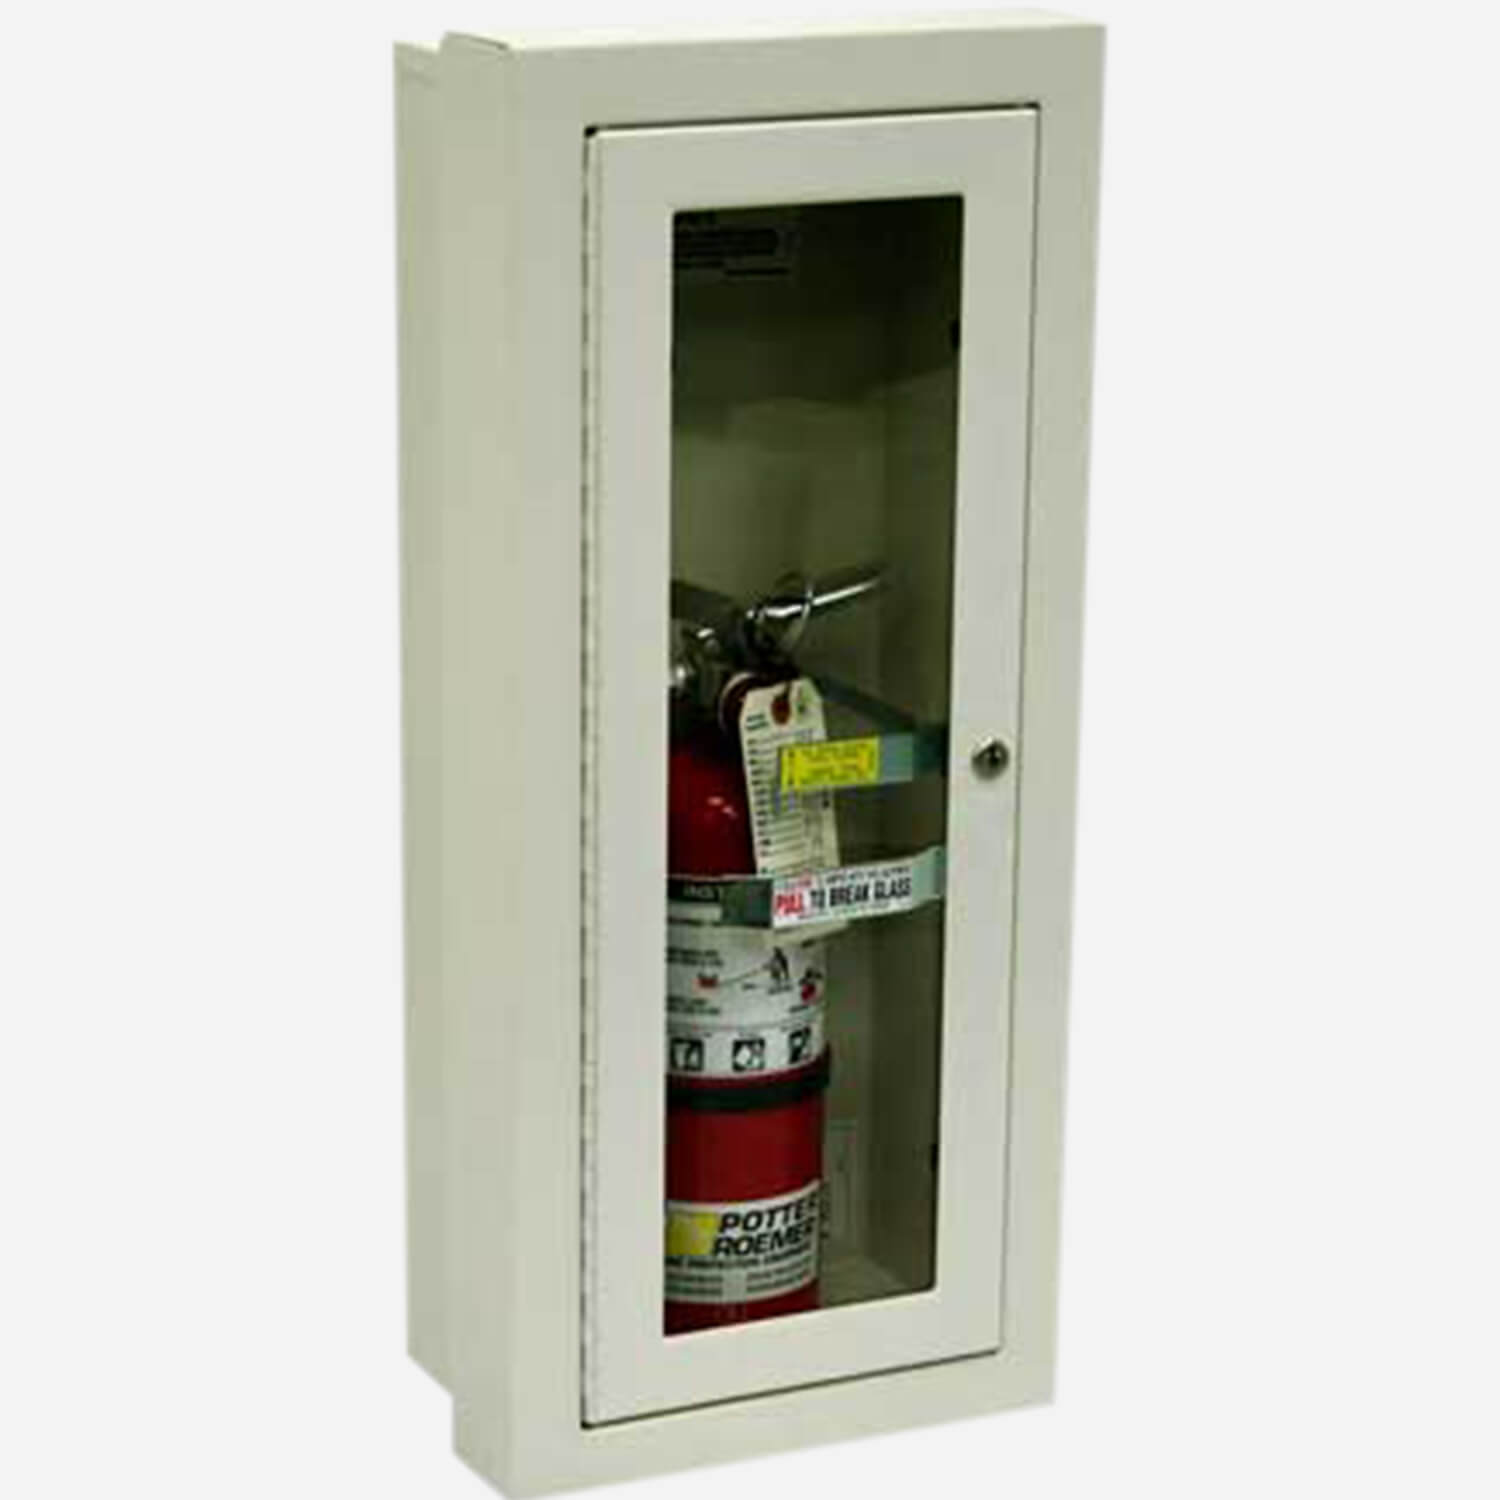 SemiRecessed Alta Fire Extinguisher Cabinets  Potter Roemer